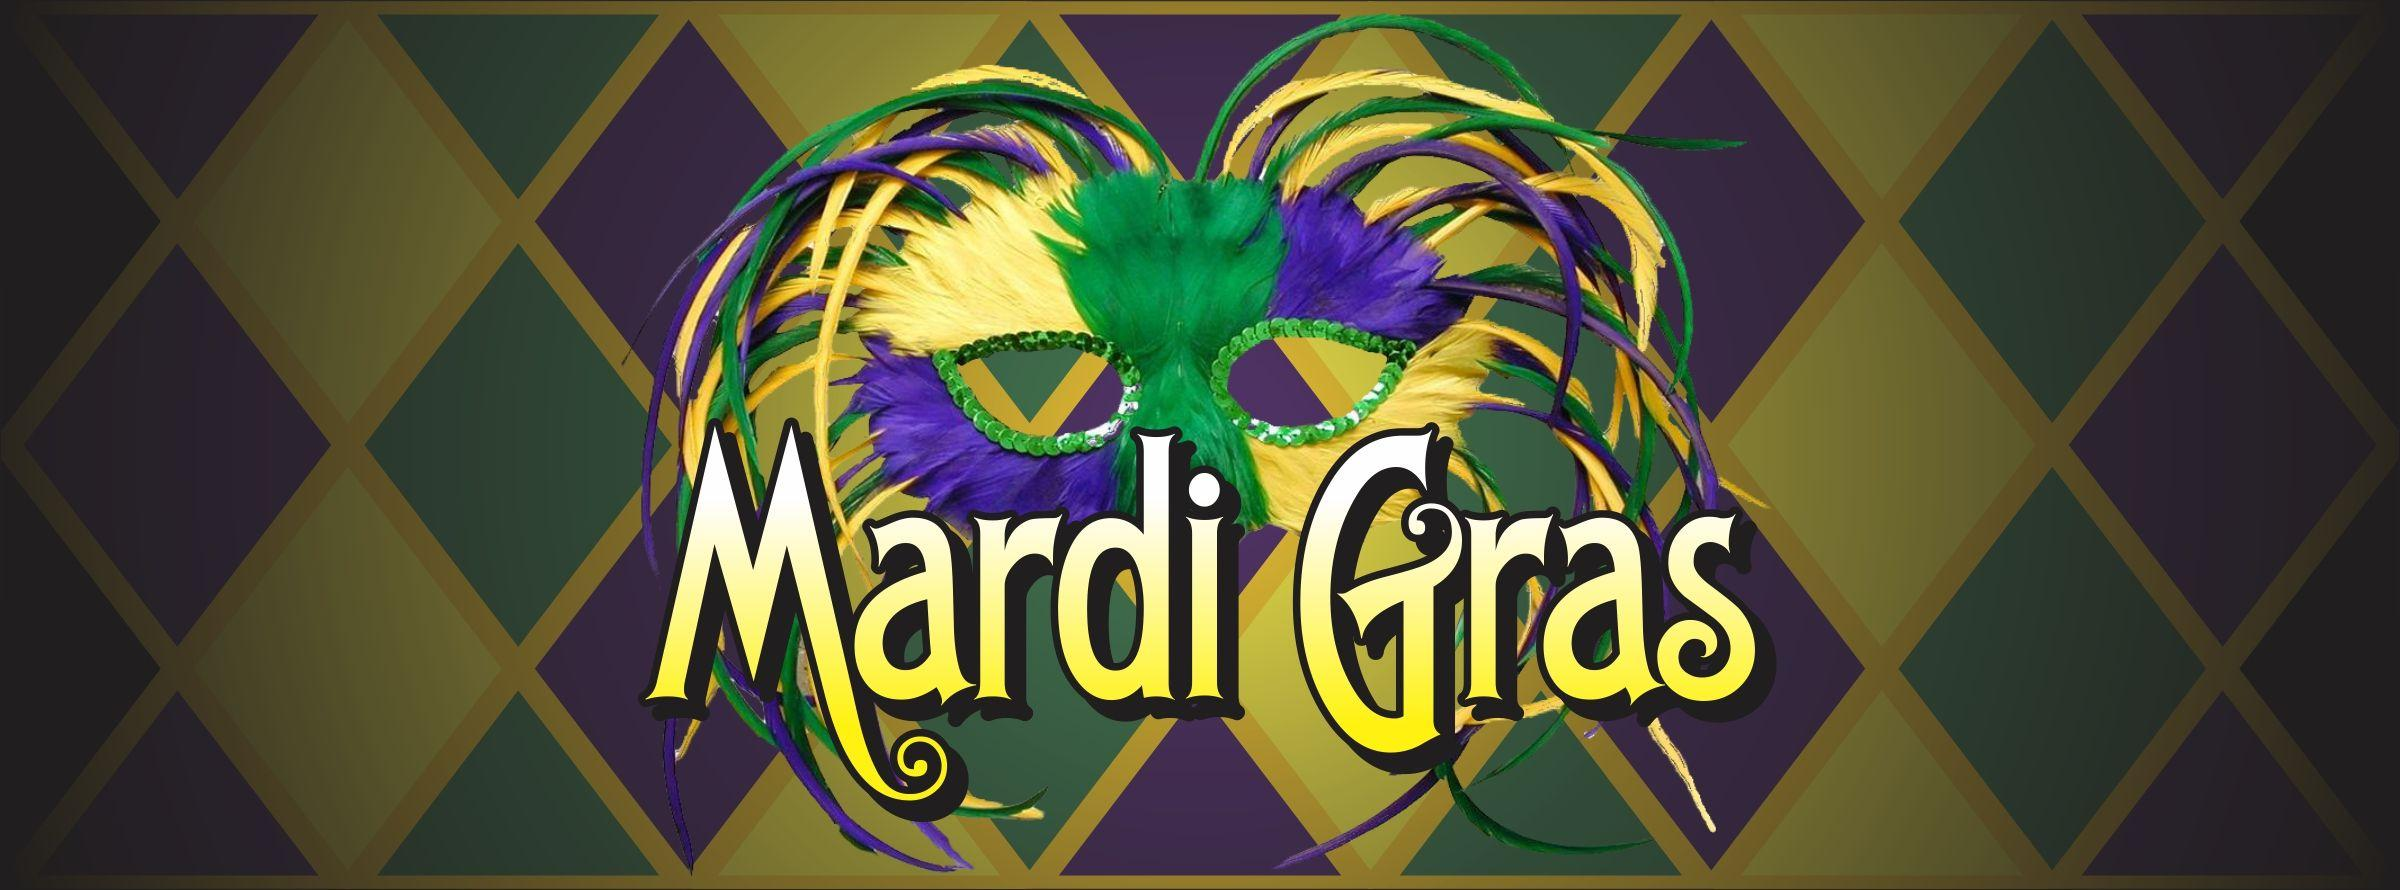 Mardi Gras Wallpapers and Backgrounds